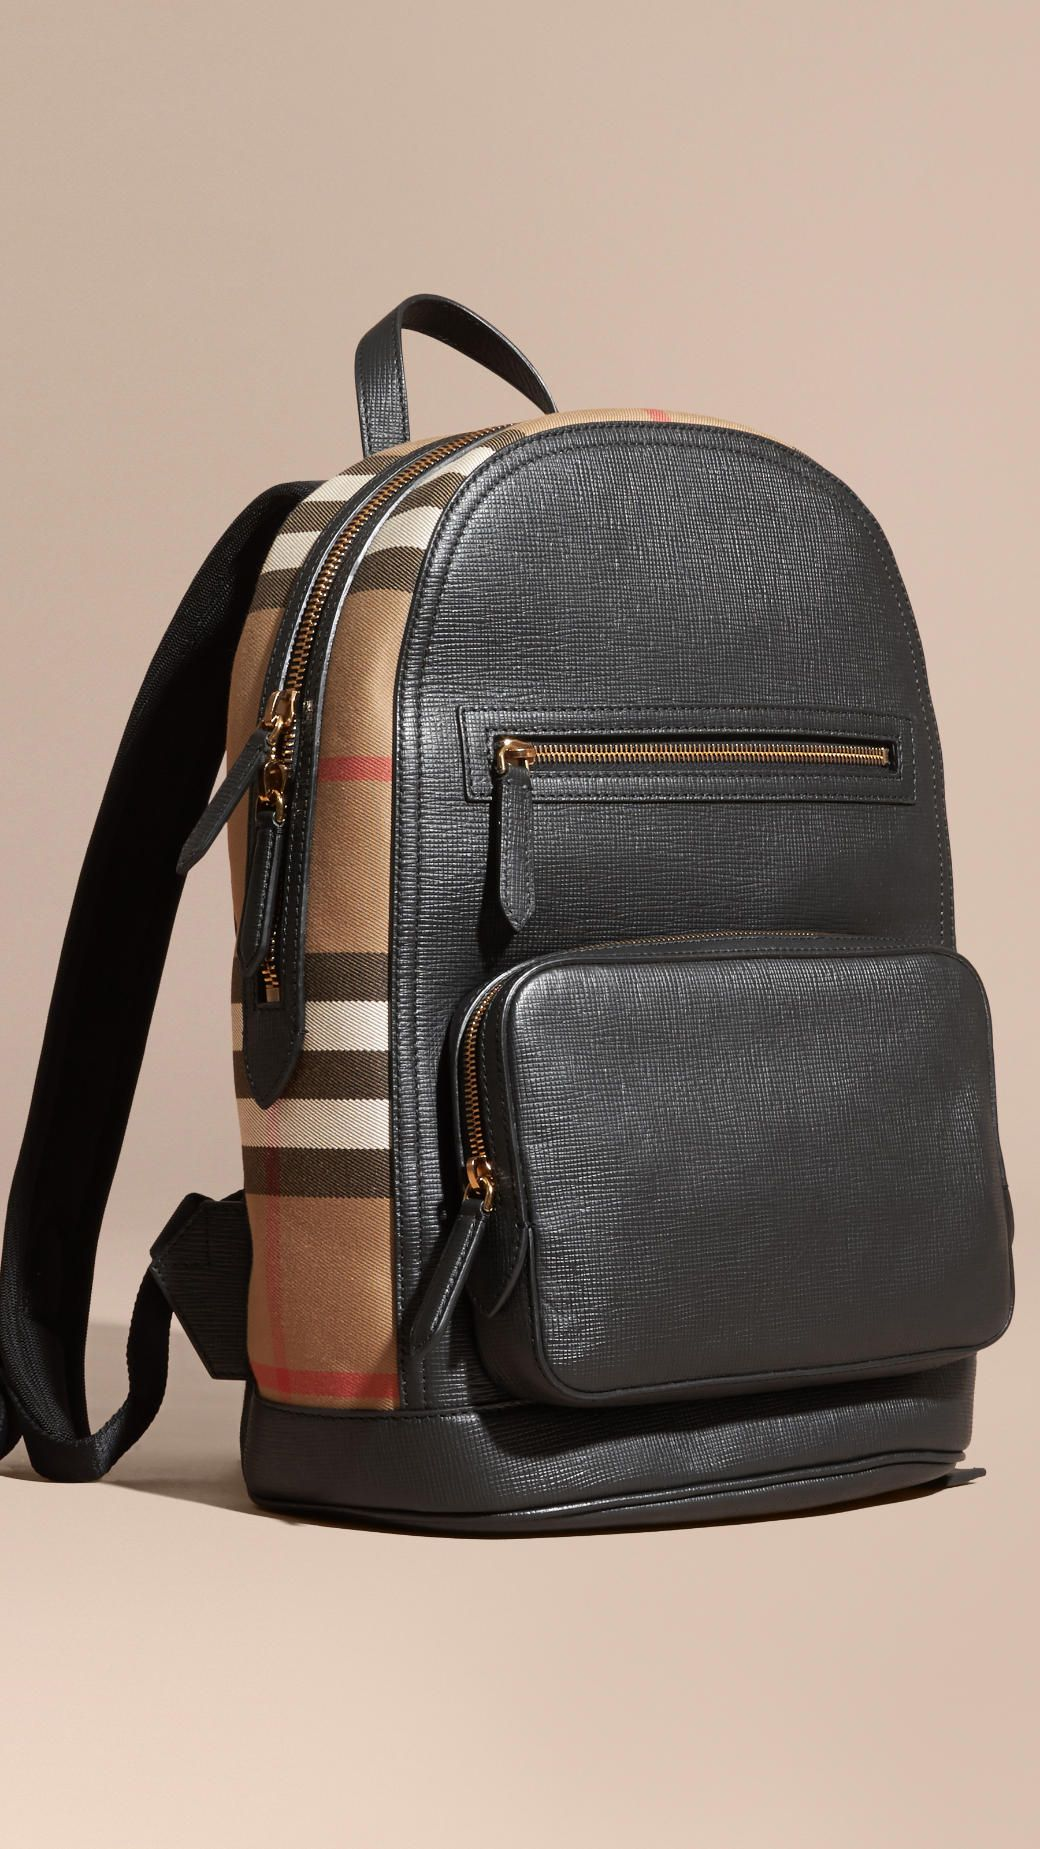 77b51cfe9f94 A backpack shaped in textured leather and English-woven House check.  Burberry